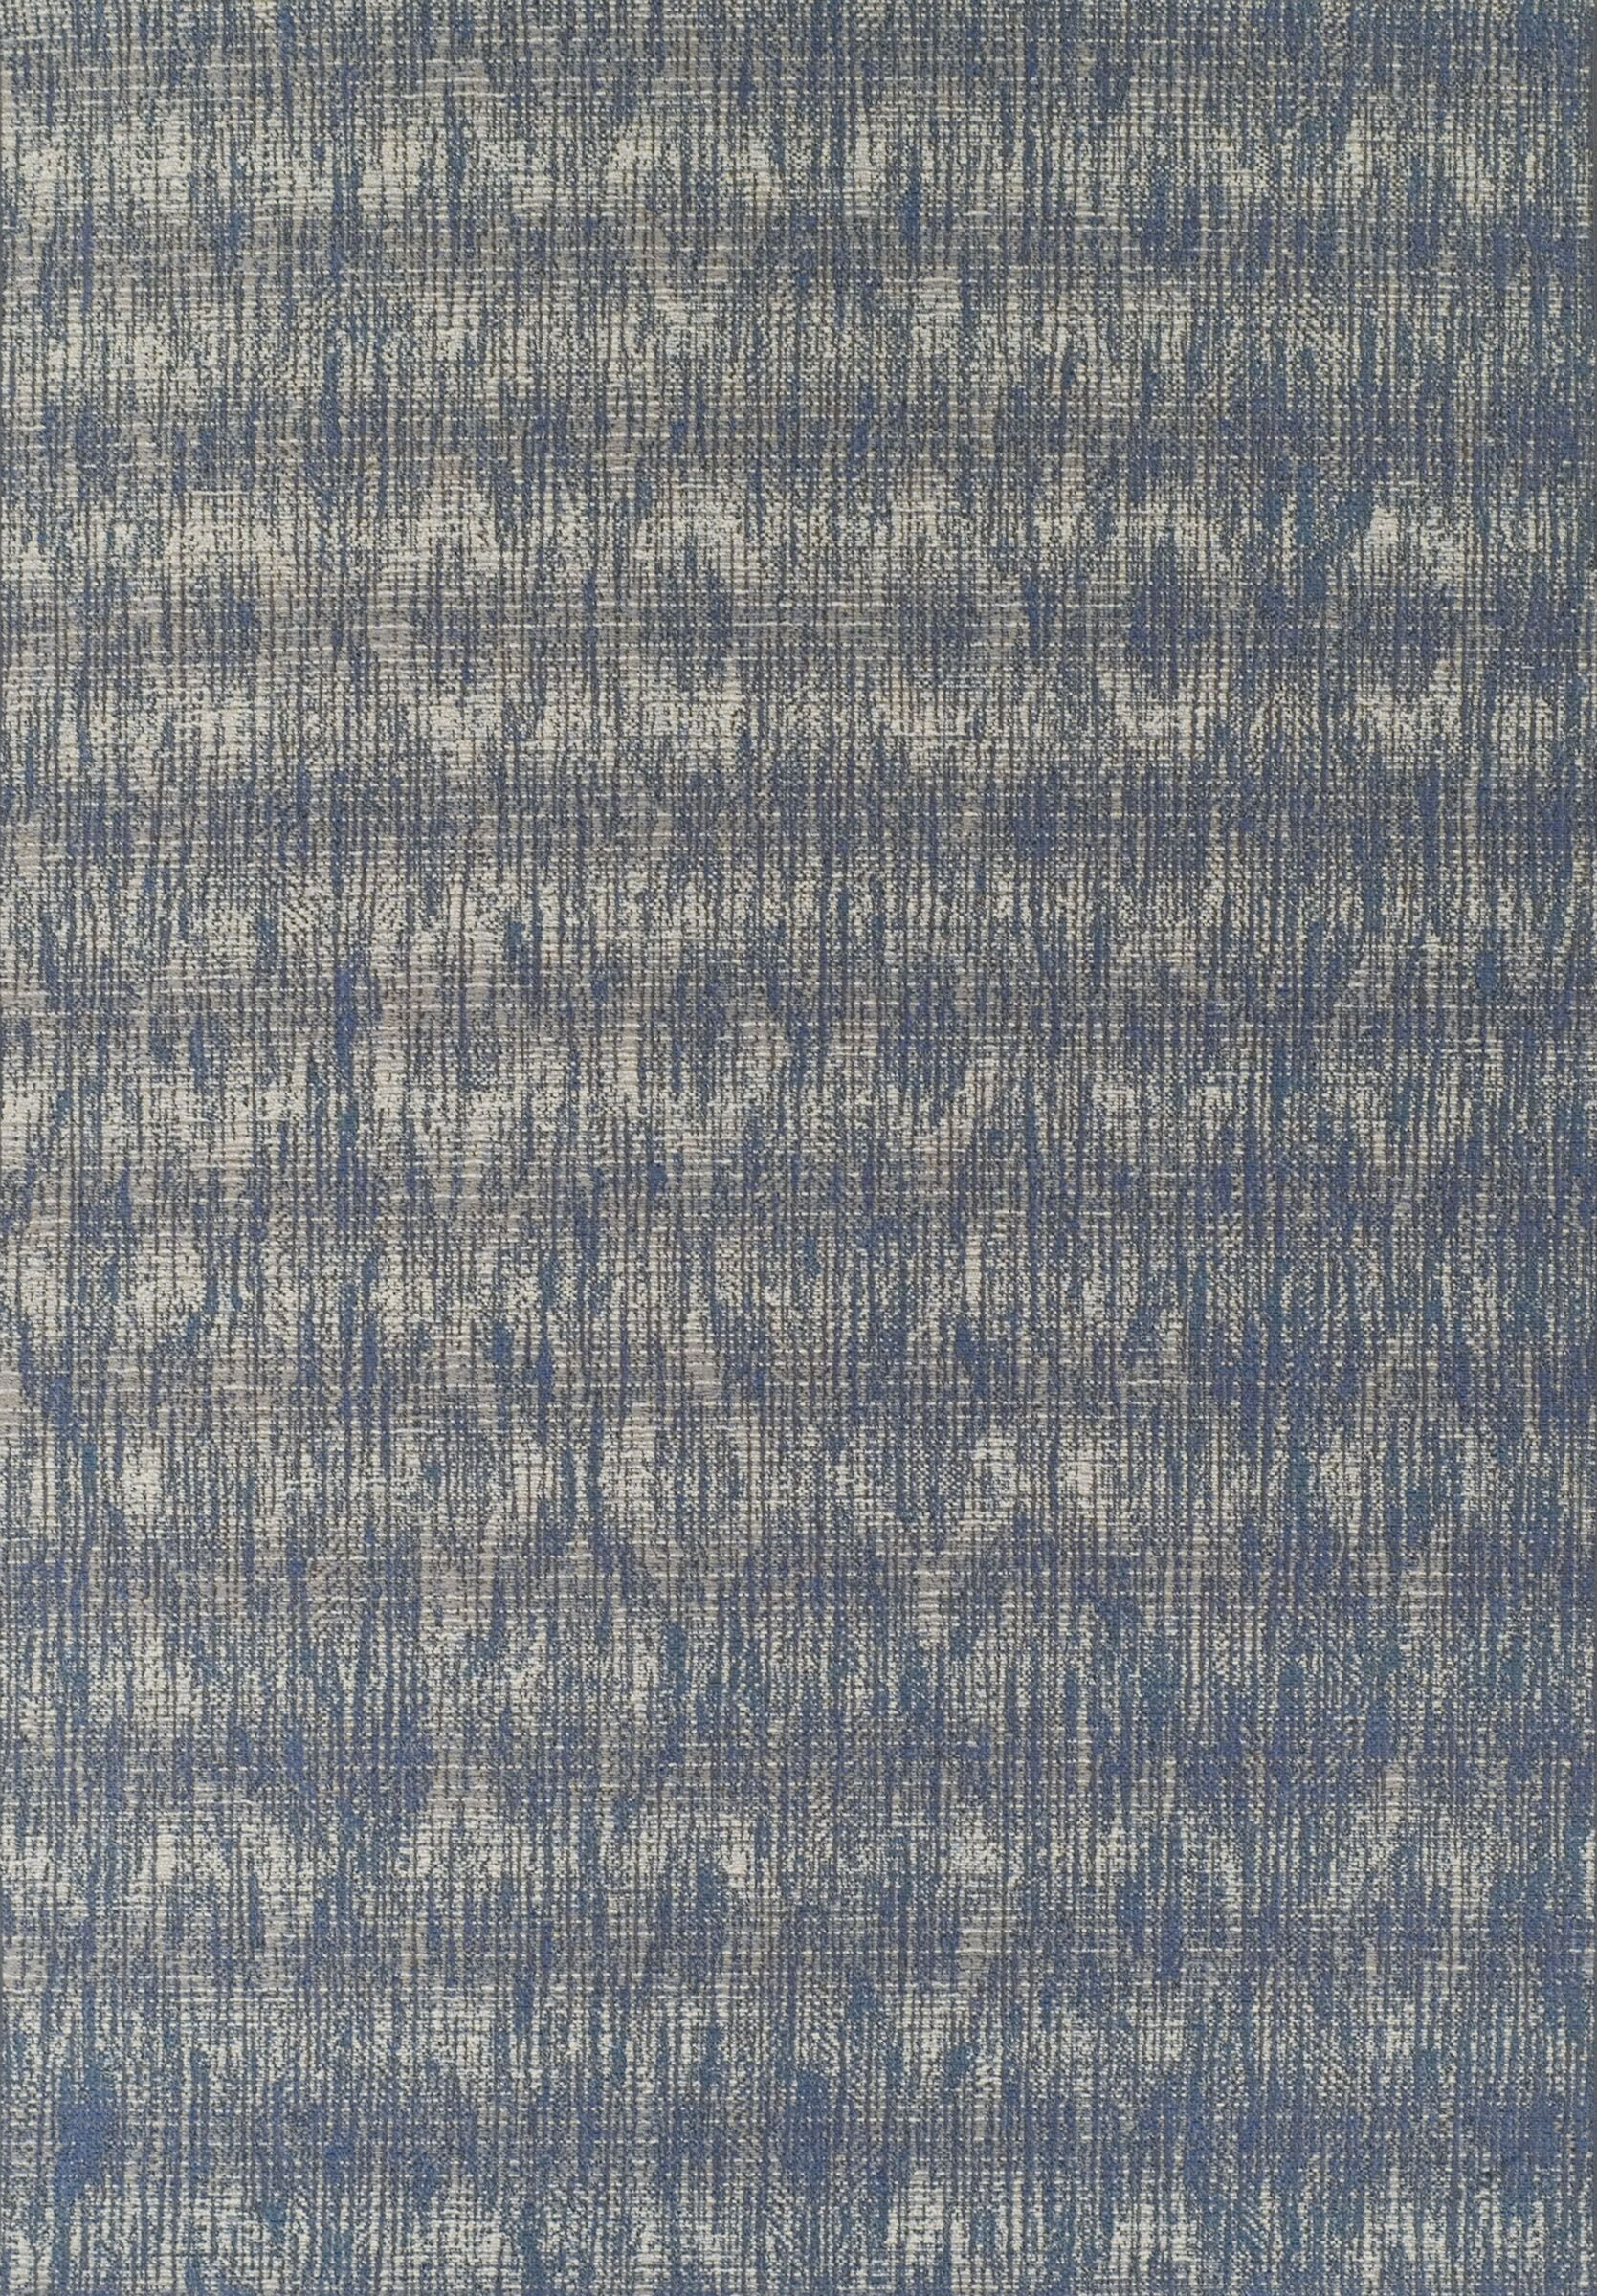 Tissir Denim Indoor/Outdoor Area Rug  Rug Size: Rectangle 8'2